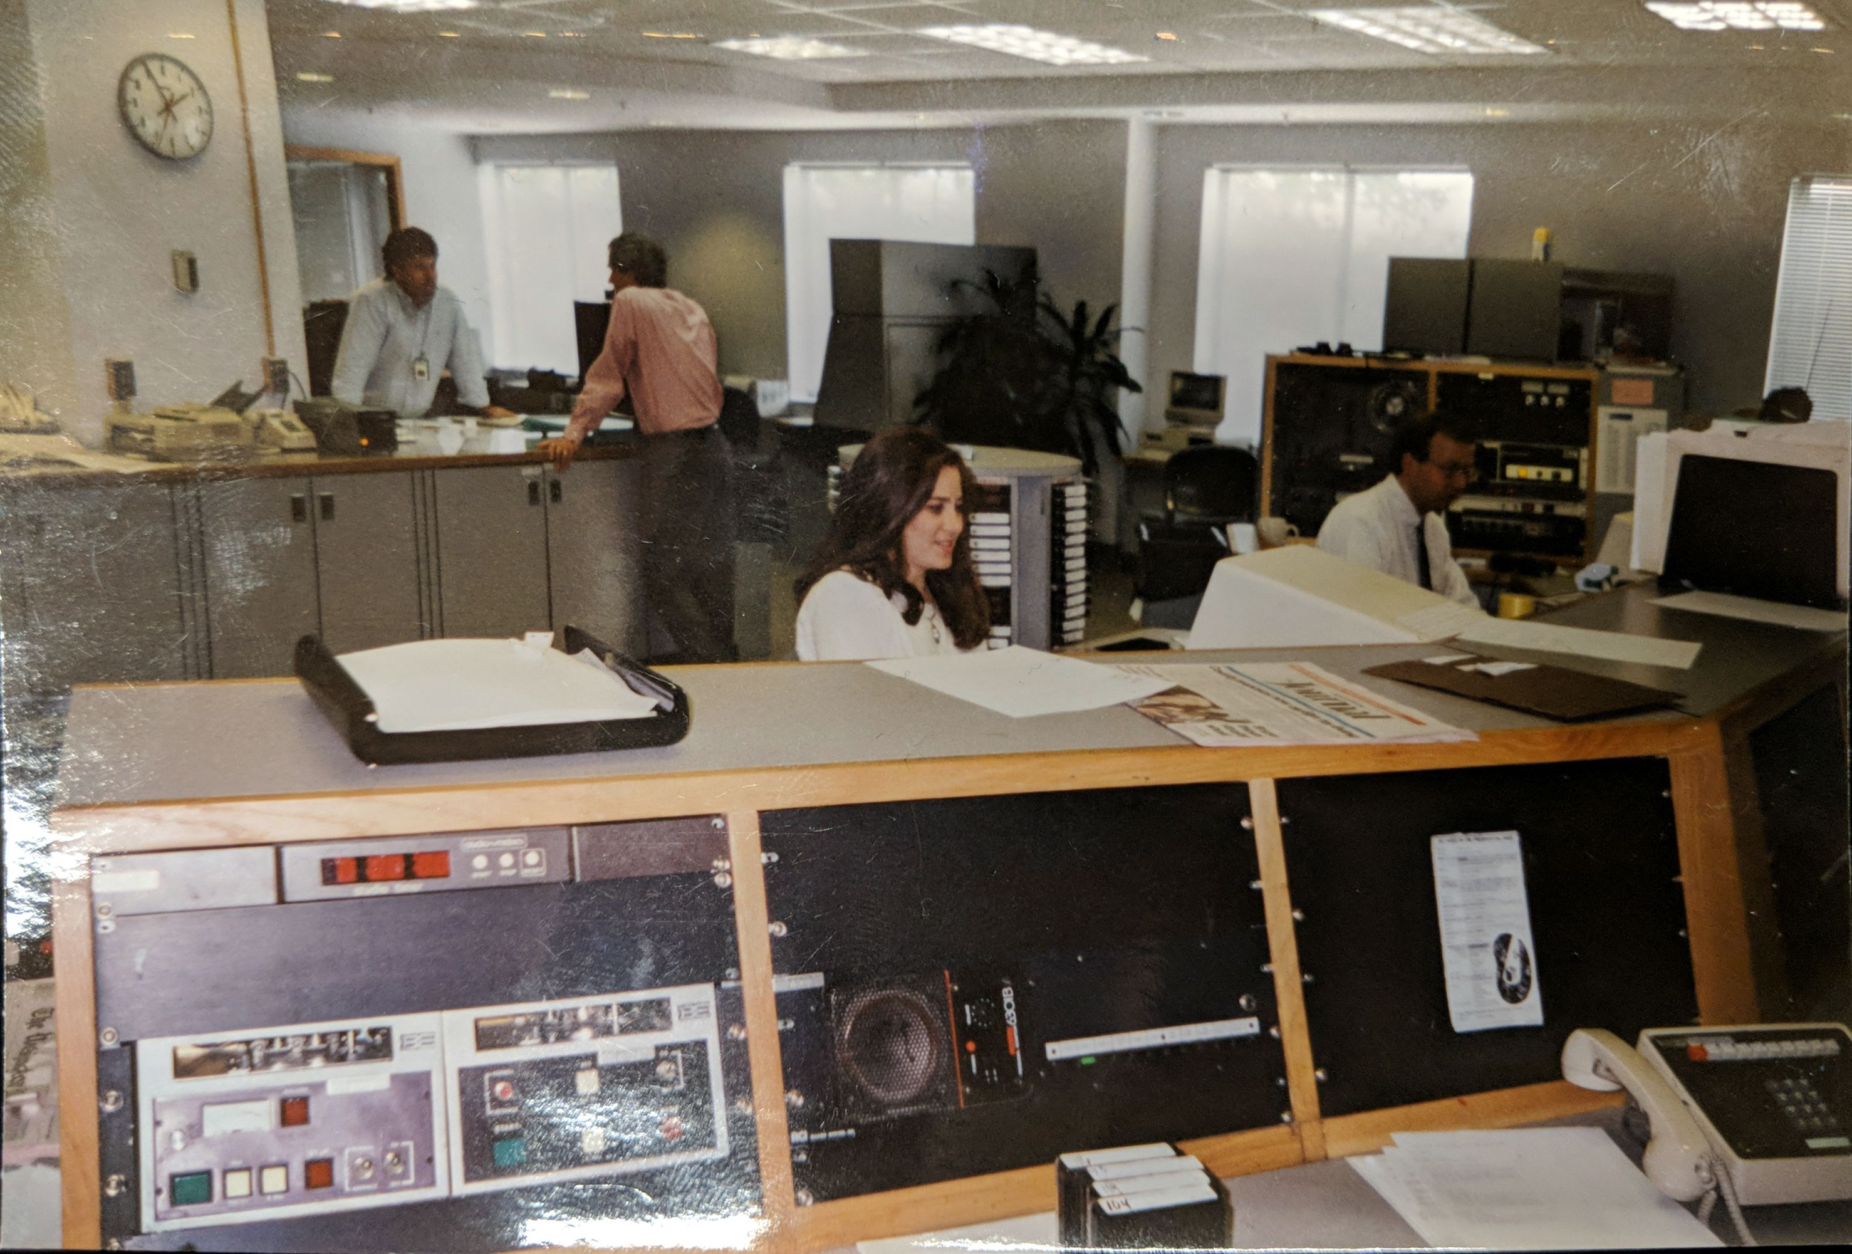 Former news and programming director Michelle Komes-Dolge (center) and Mike McMearty (right), who currently holds the title, work at the editor's desk back before renovations at 3400. (Courtesy Mike McMearty)